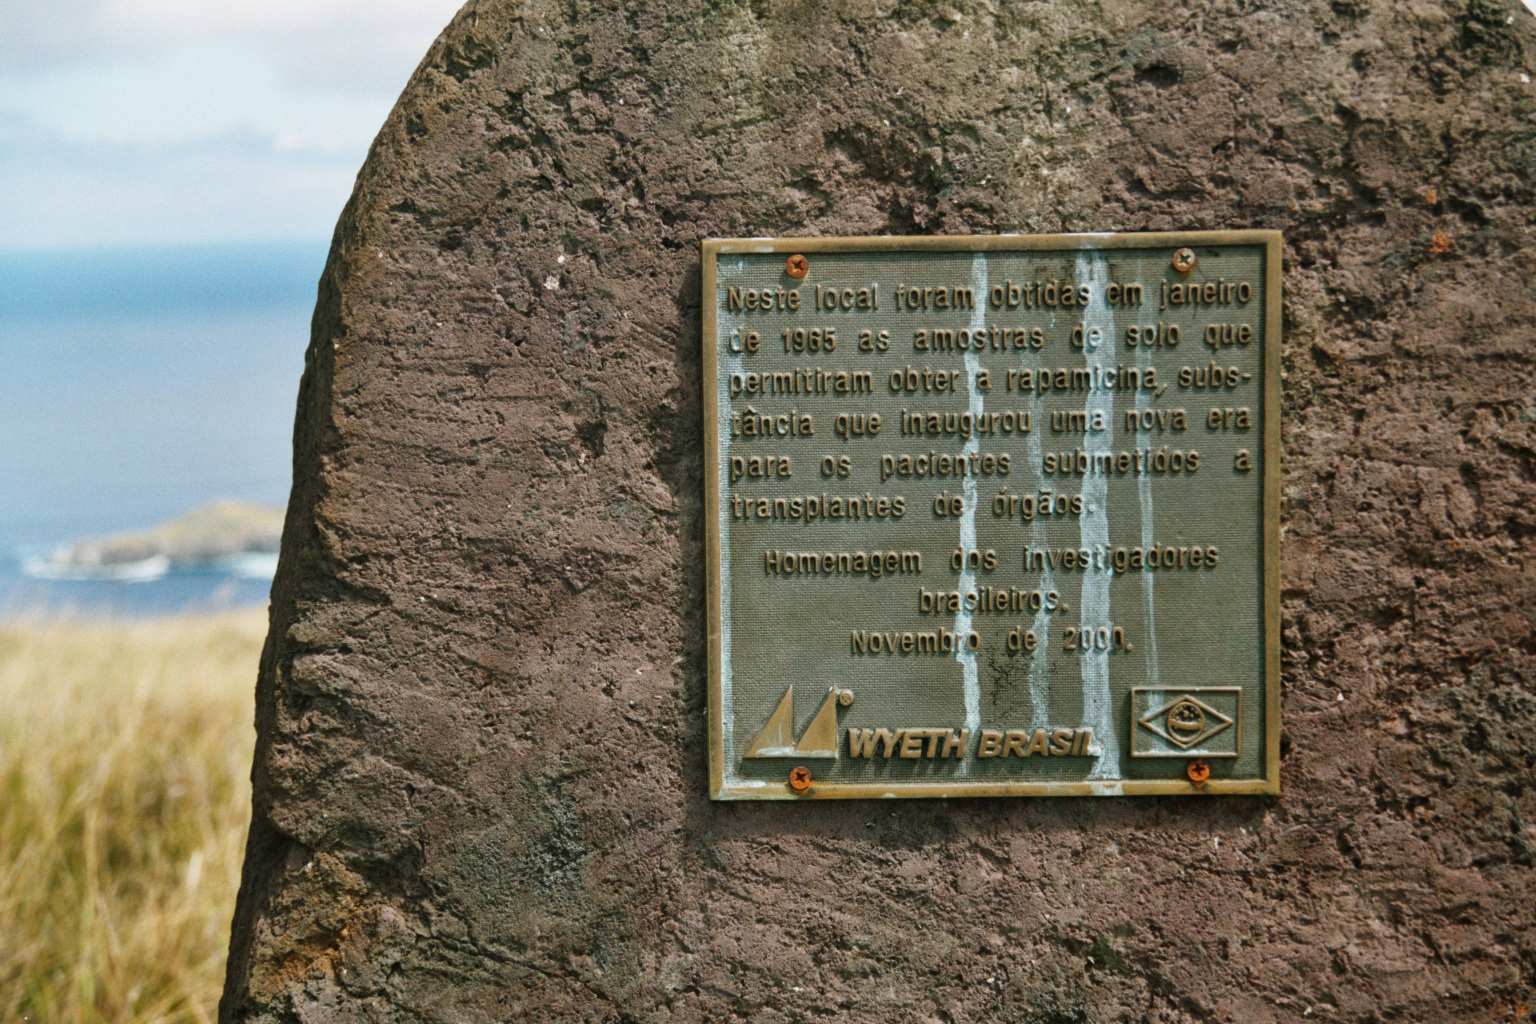 A plaque commemorating the discovery of Rapamycin on Easter Island